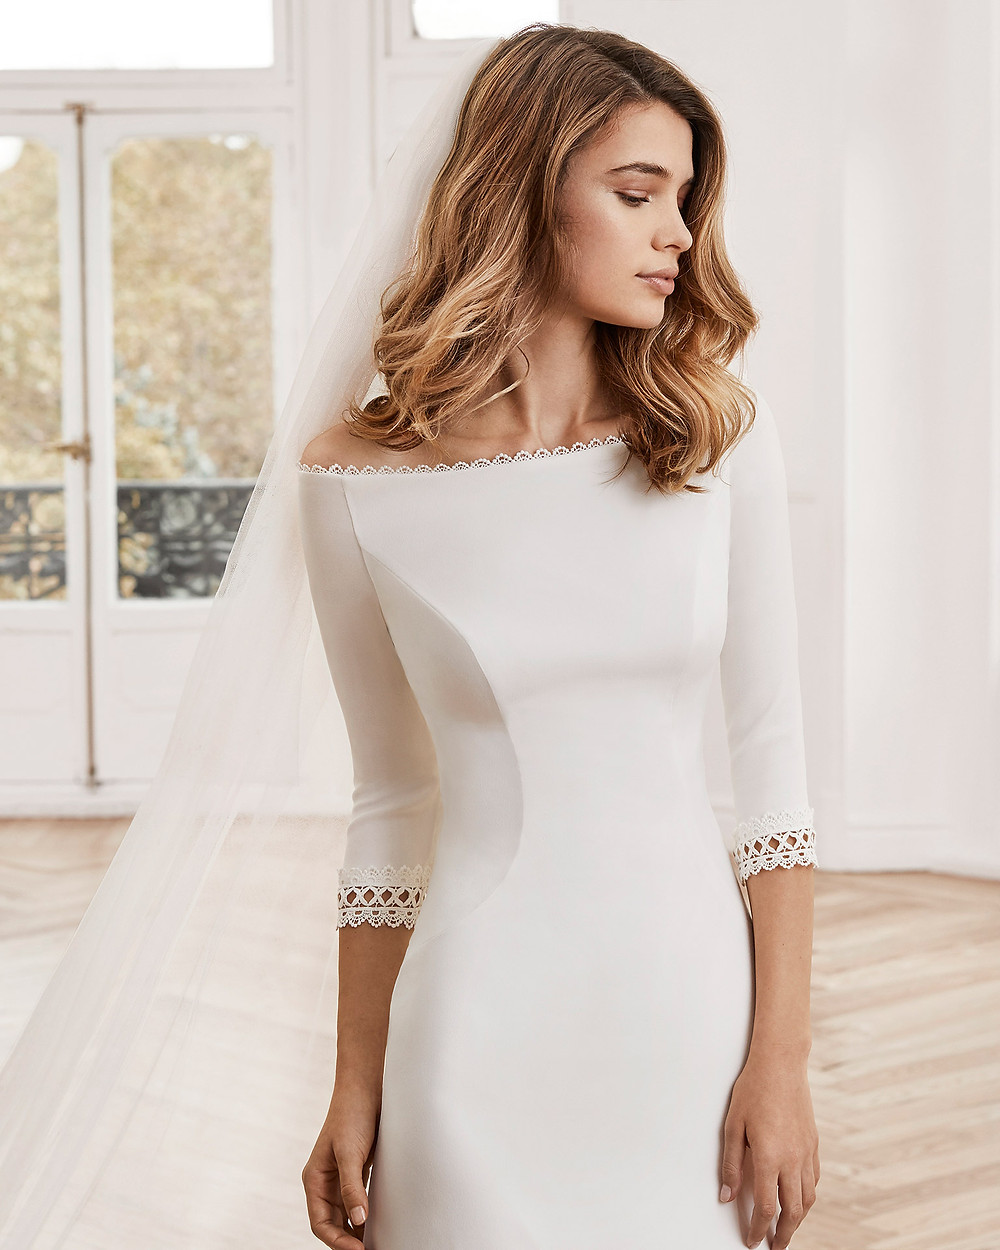 An Aire Barcelona 2020 off the shoulder crepe mermaid fit and flare wedding dress with half sleeves